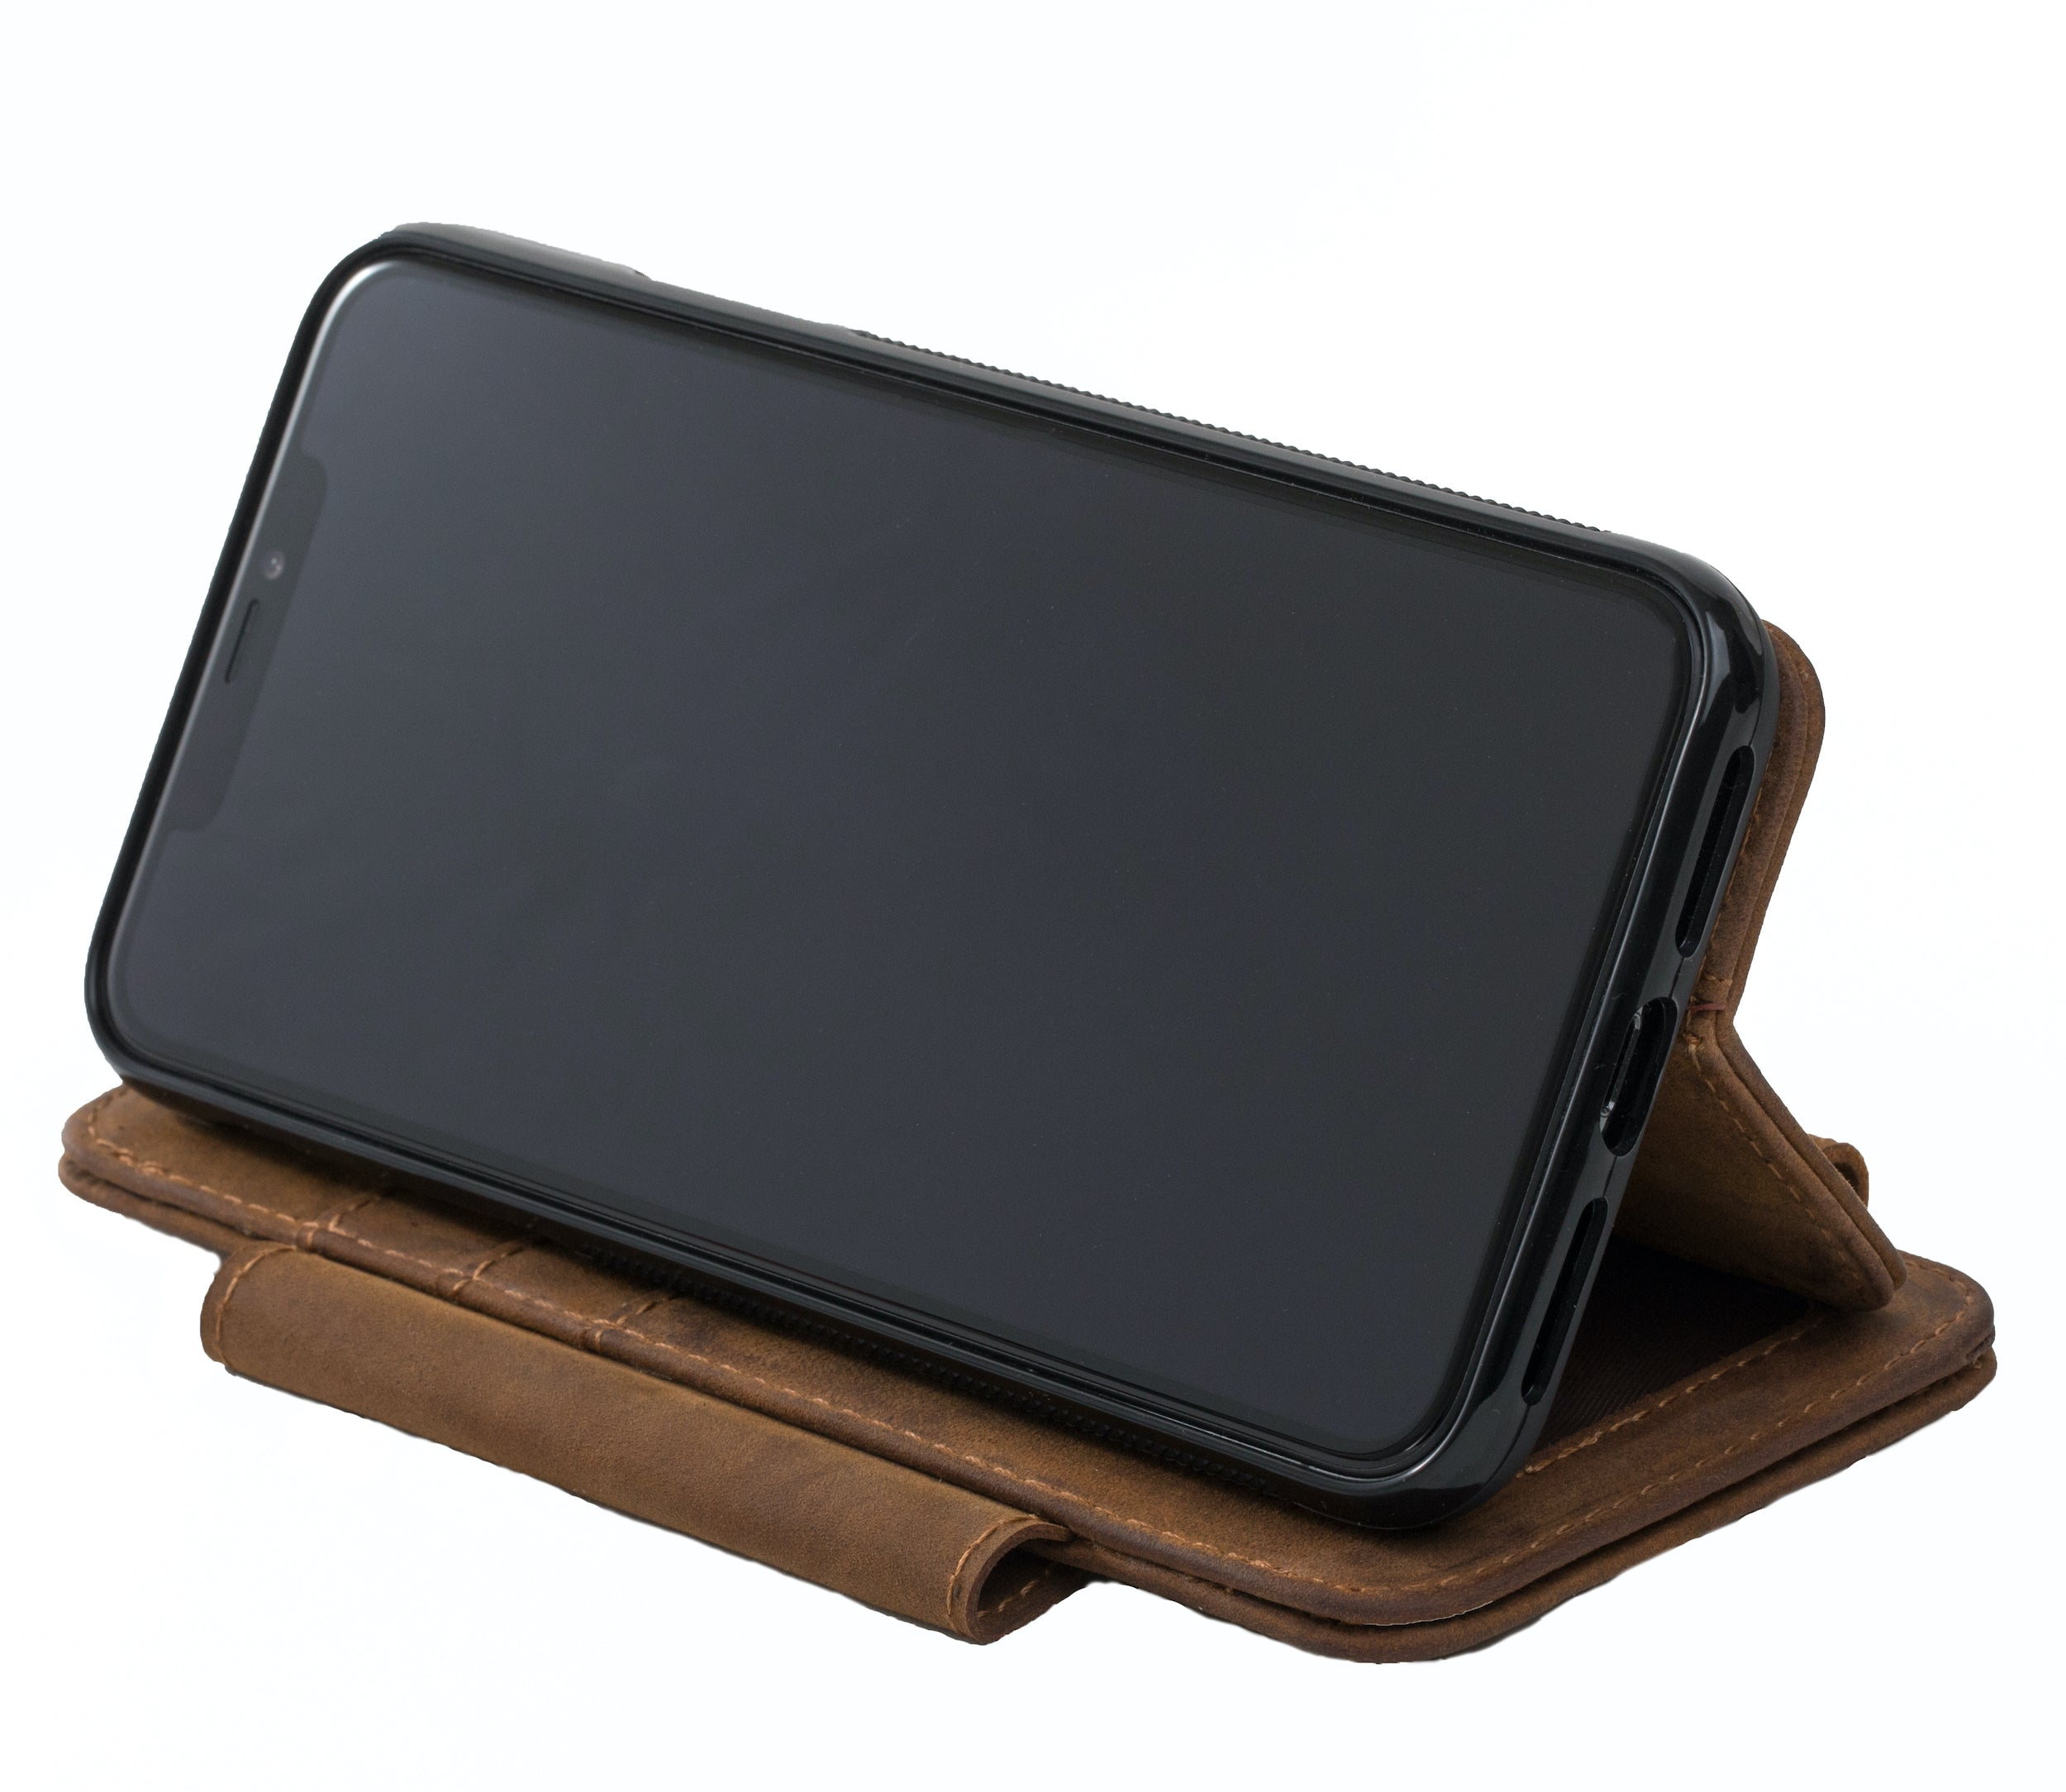 sport-brown iphone-11-pro-max sport-brown iphone-12-pro-max sport-brown iphone-12-or-12-pro